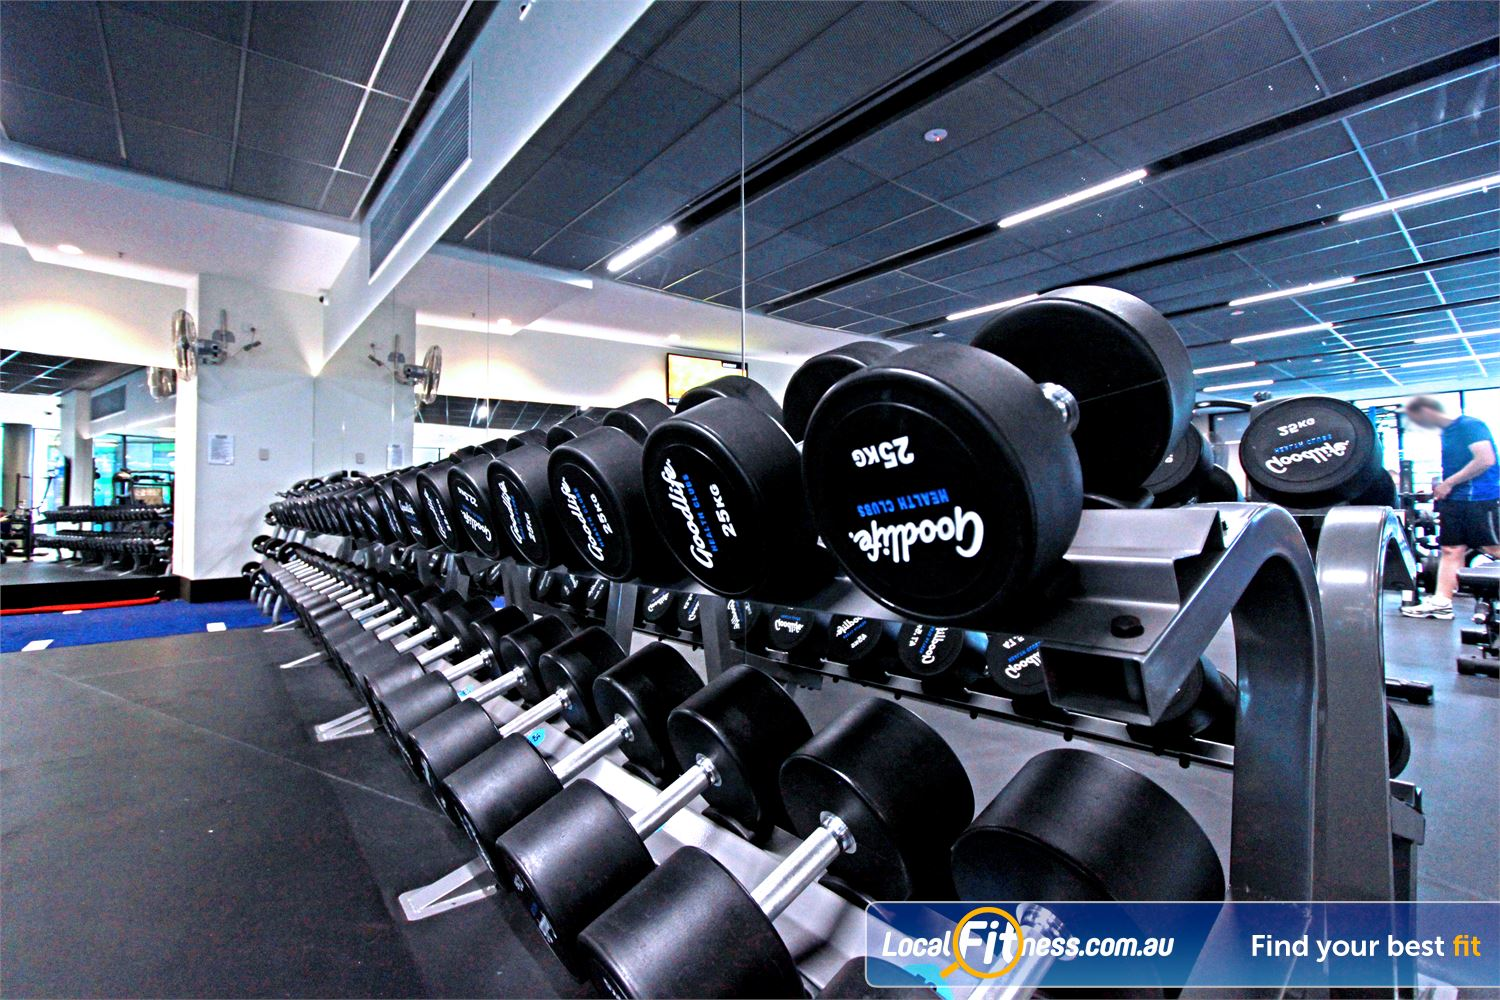 Goodlife Health Clubs Near North Melbourne Our Docklands gym includes a full range of dumbbells and barbells.